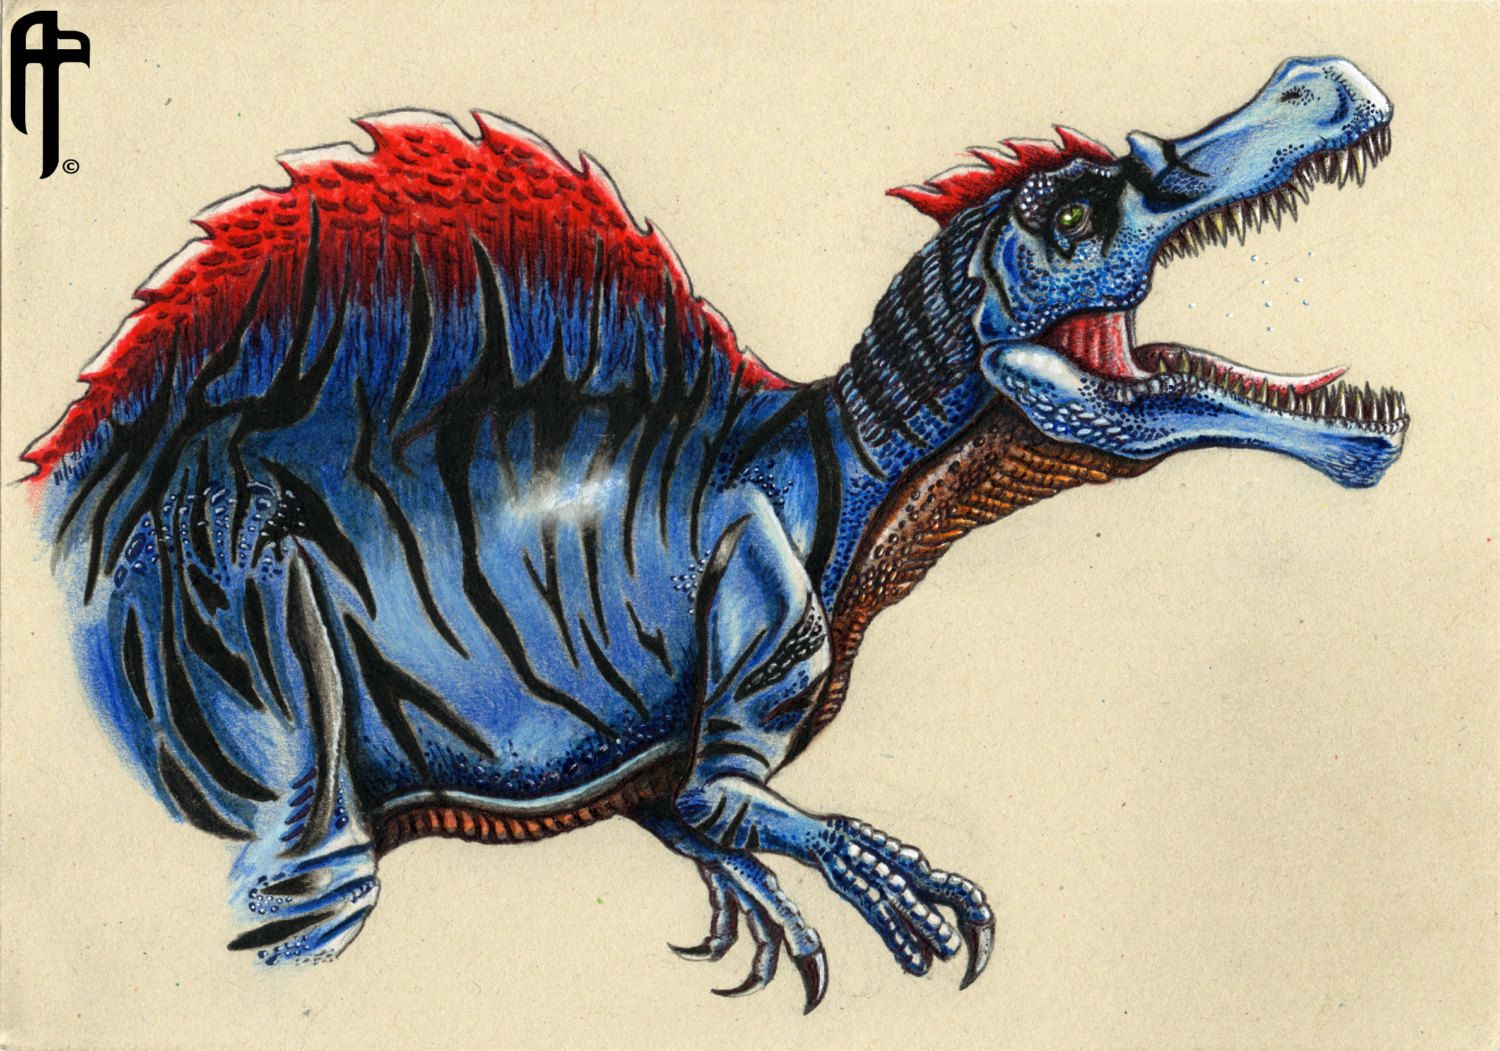 jurassic world the game spinosaurus lvl 40 drawing by appaleoart on